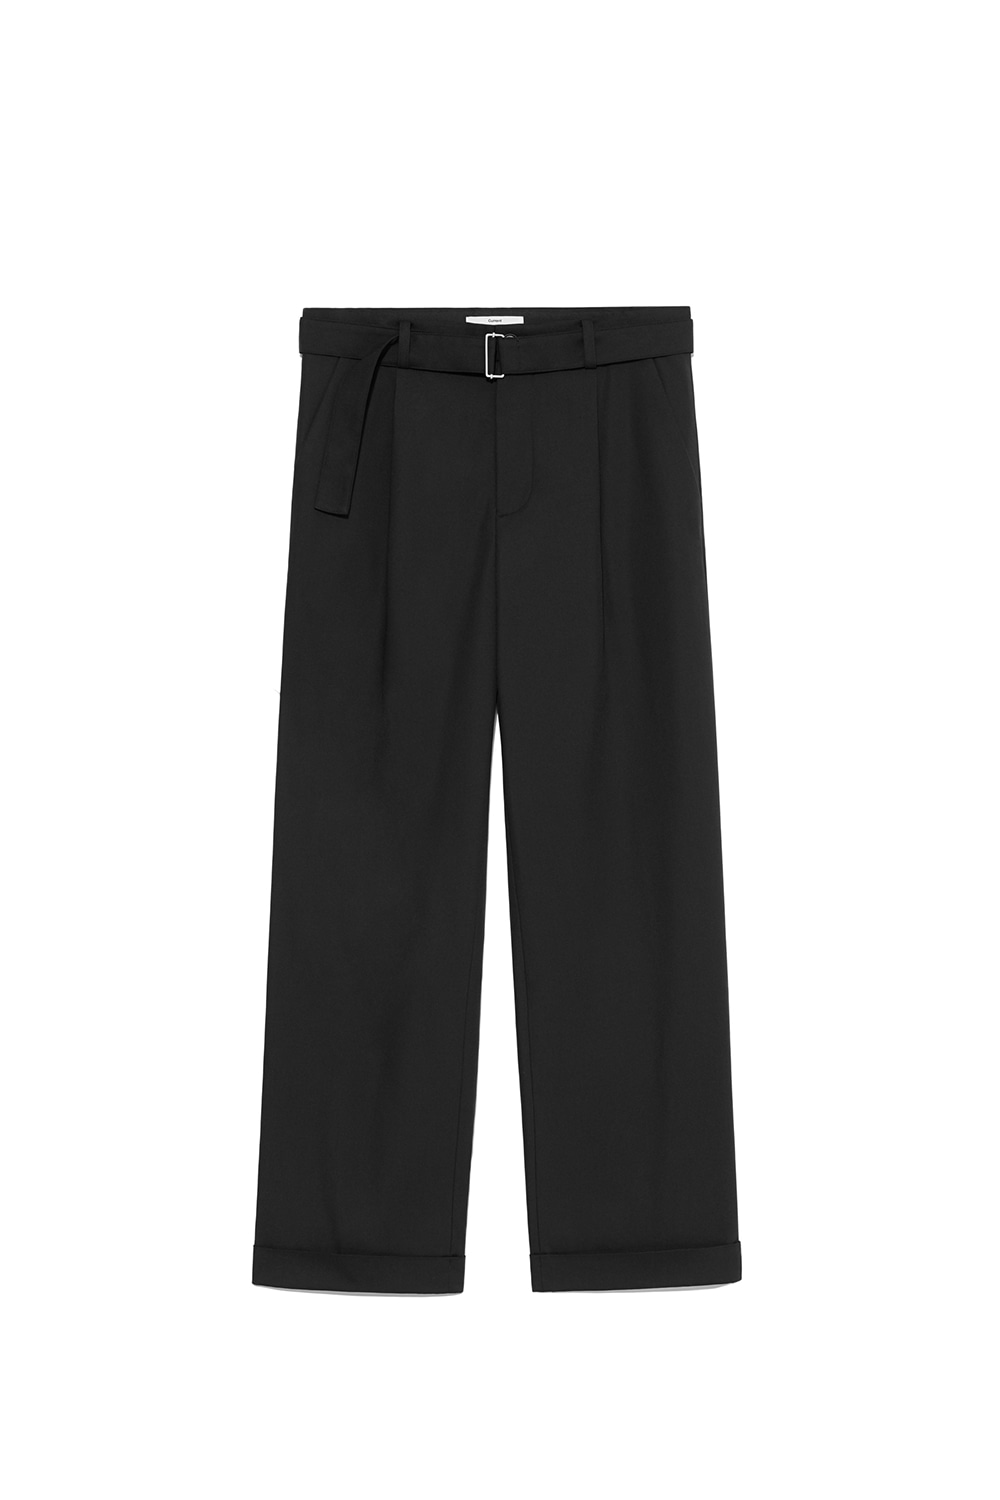 Belt Slacks Men [Black]